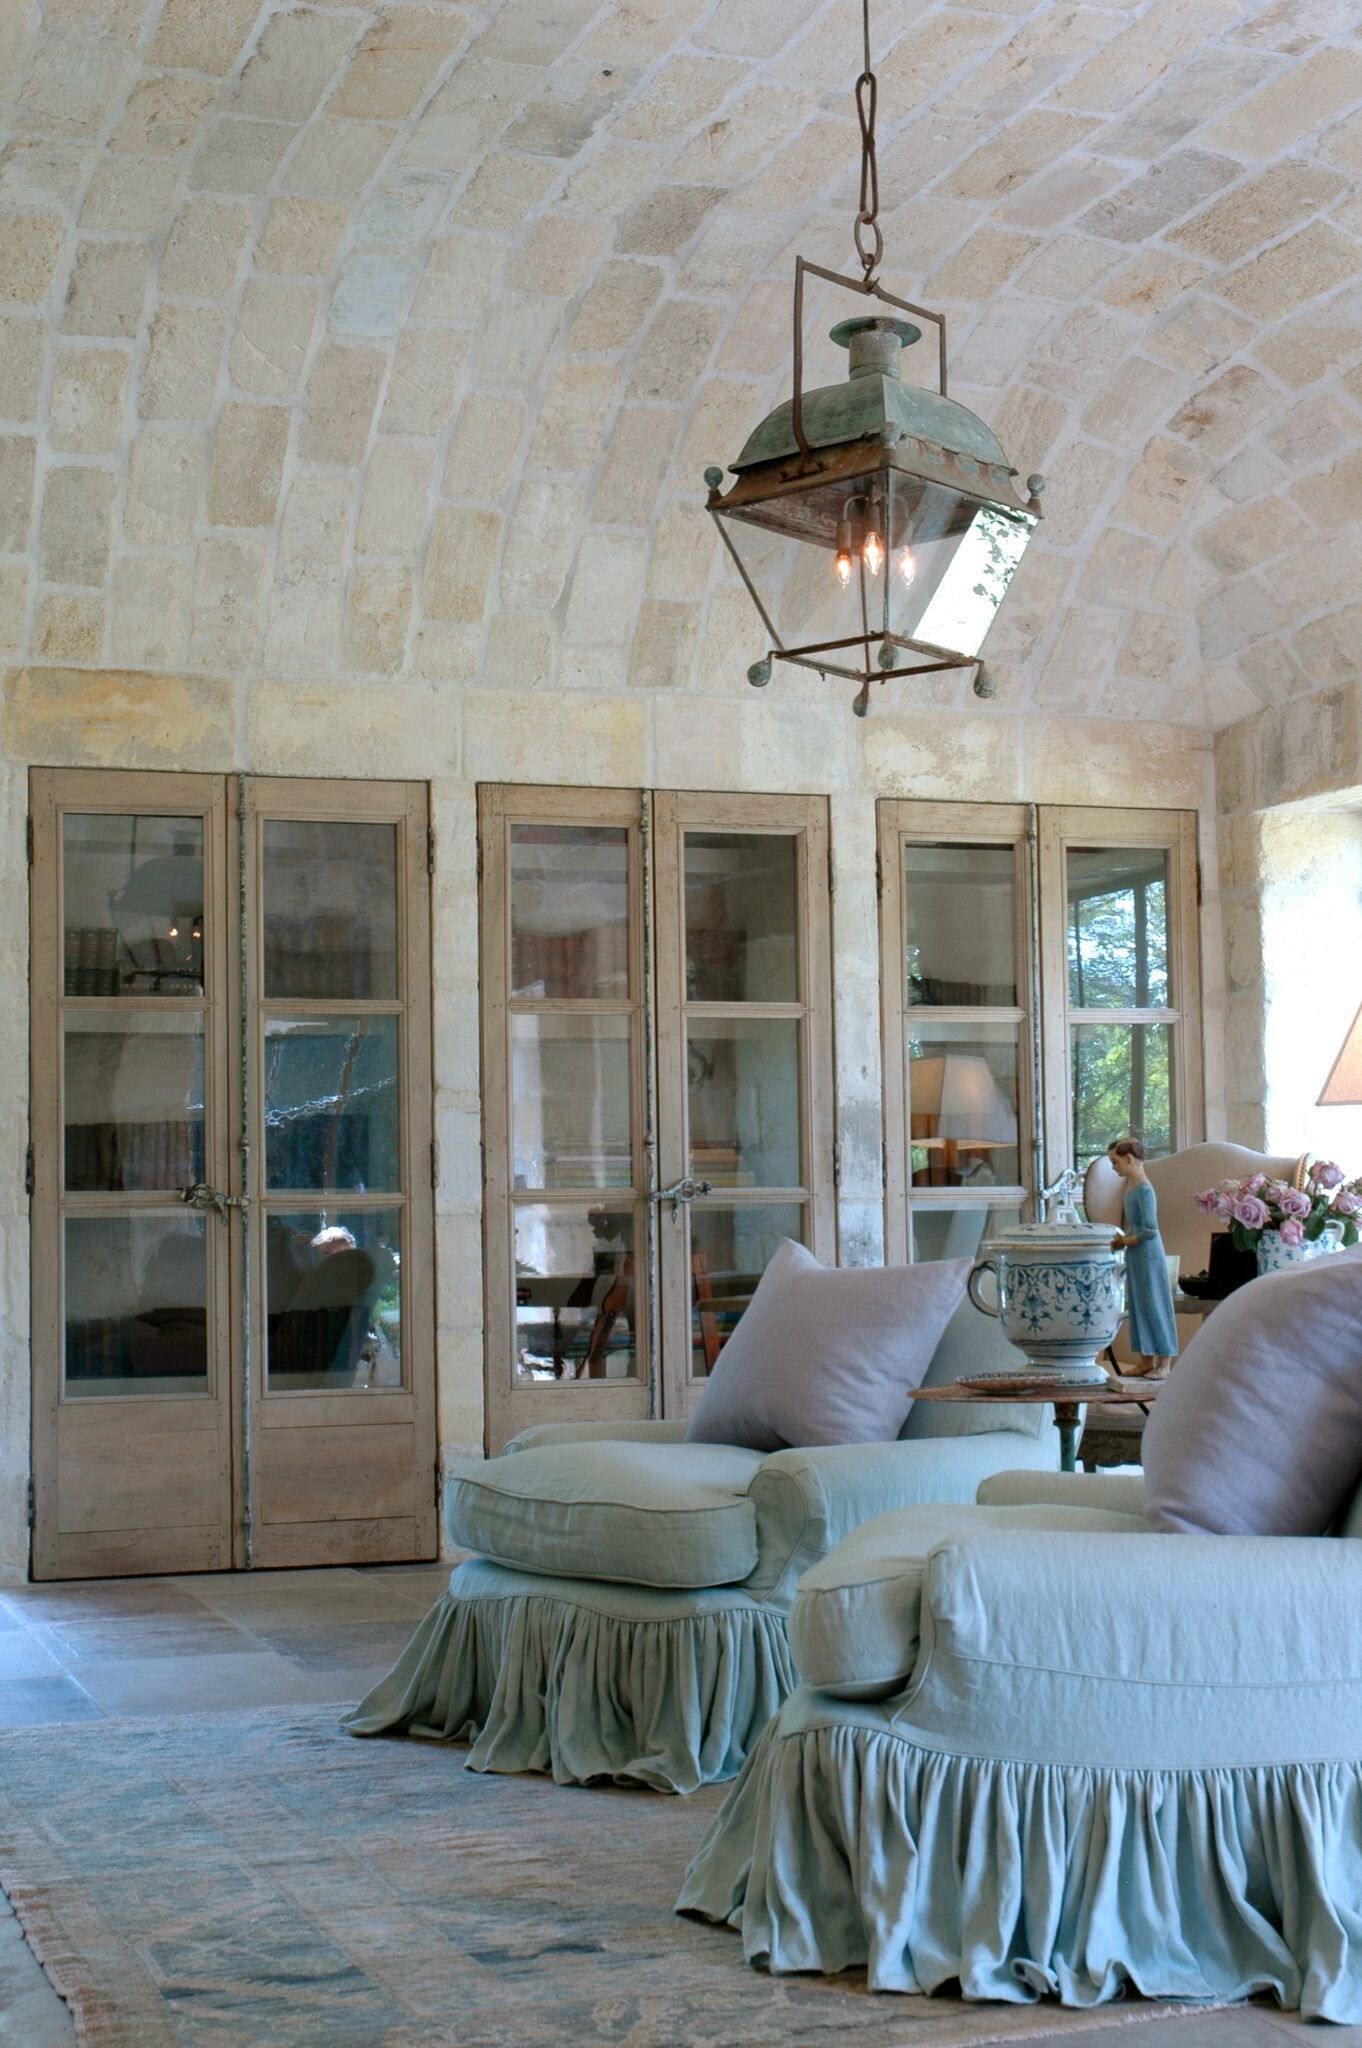 Three pairs of 18th century French doors, barrel vaulted ceiling clad in 17th century stone from a French Vineyard, and blissful upholstered pieces grace Ruth Gay's office.#chateaudomingue #ruthgay #limestone #antiques #lantern #frenchcountry #frenchfarmhouse #europeanfarmhouse #europeancountry